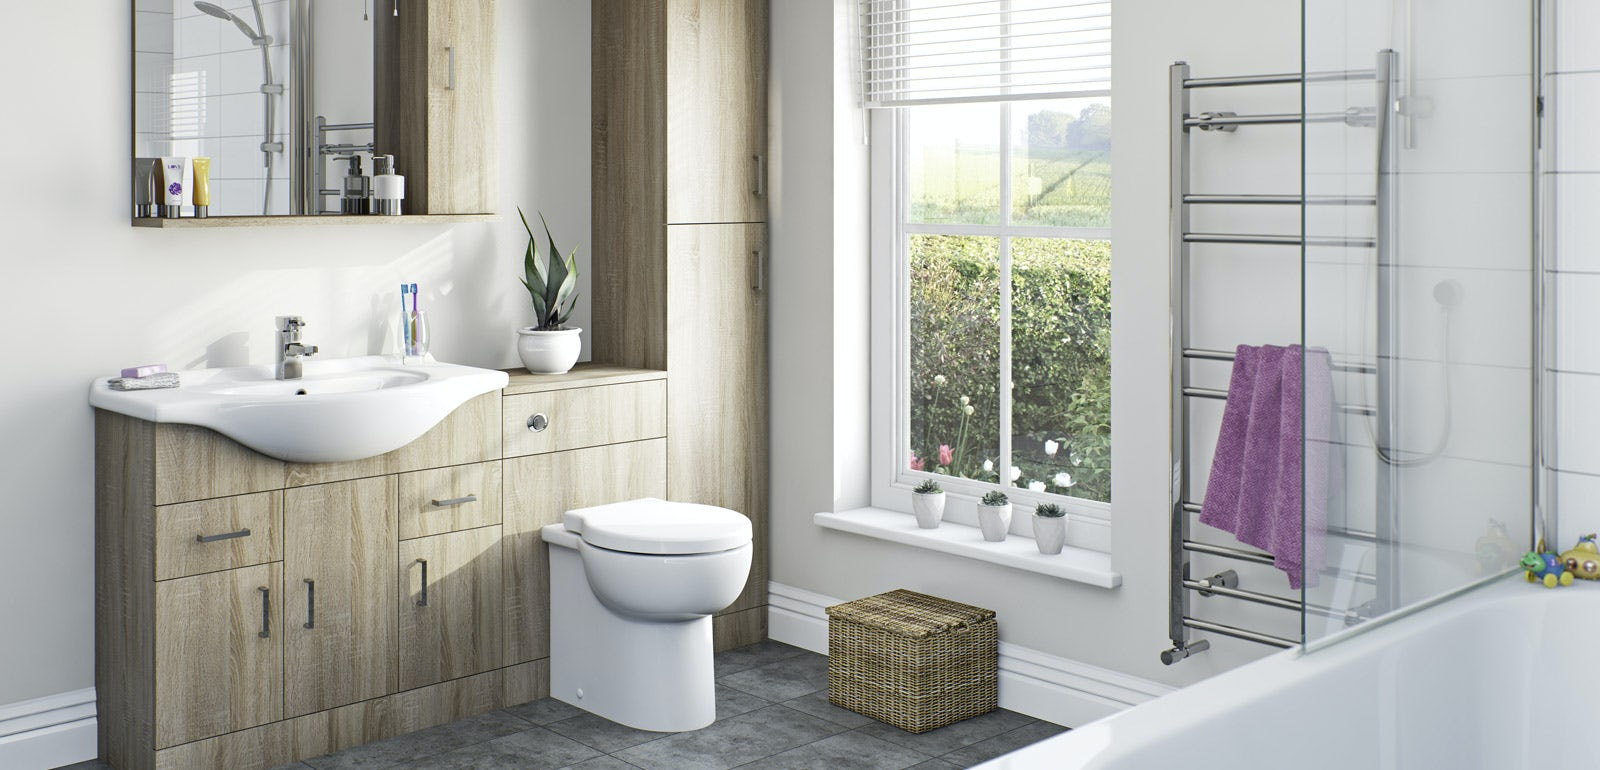 Bathroom Lights Victoria Plumb sienna oak bathroom furniture | victoriaplum